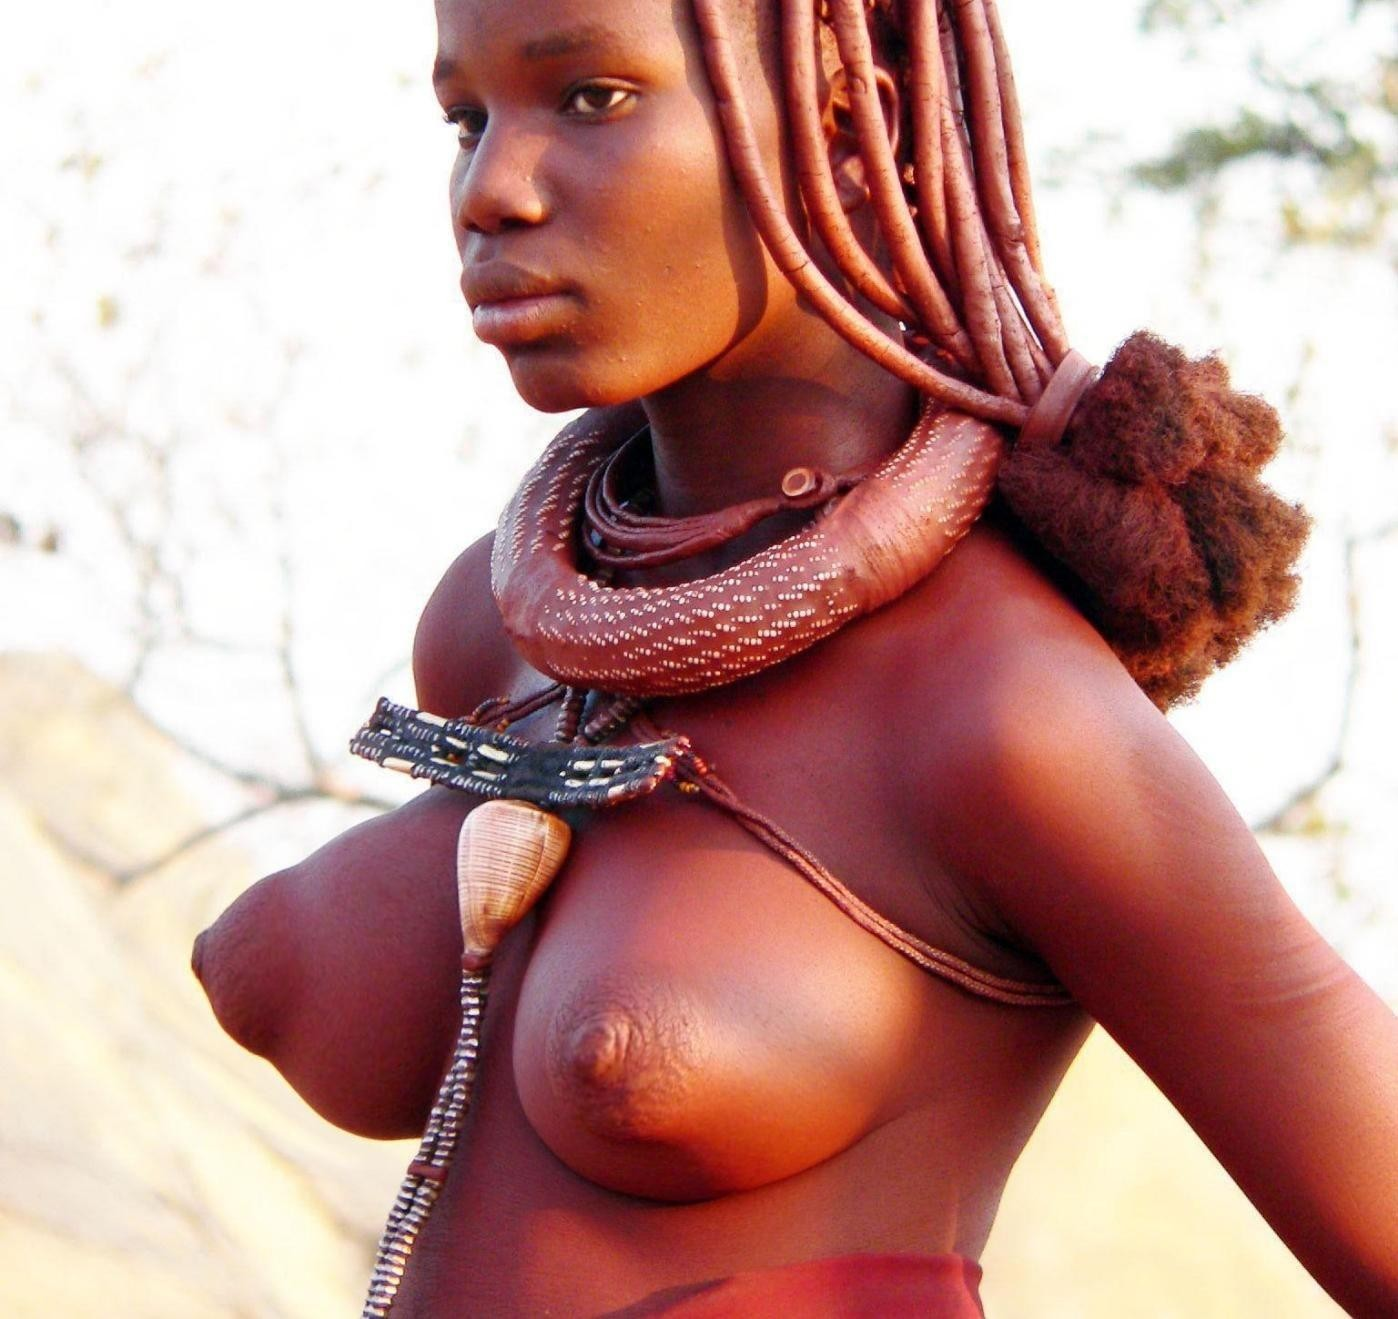 Tribe nude women sex african